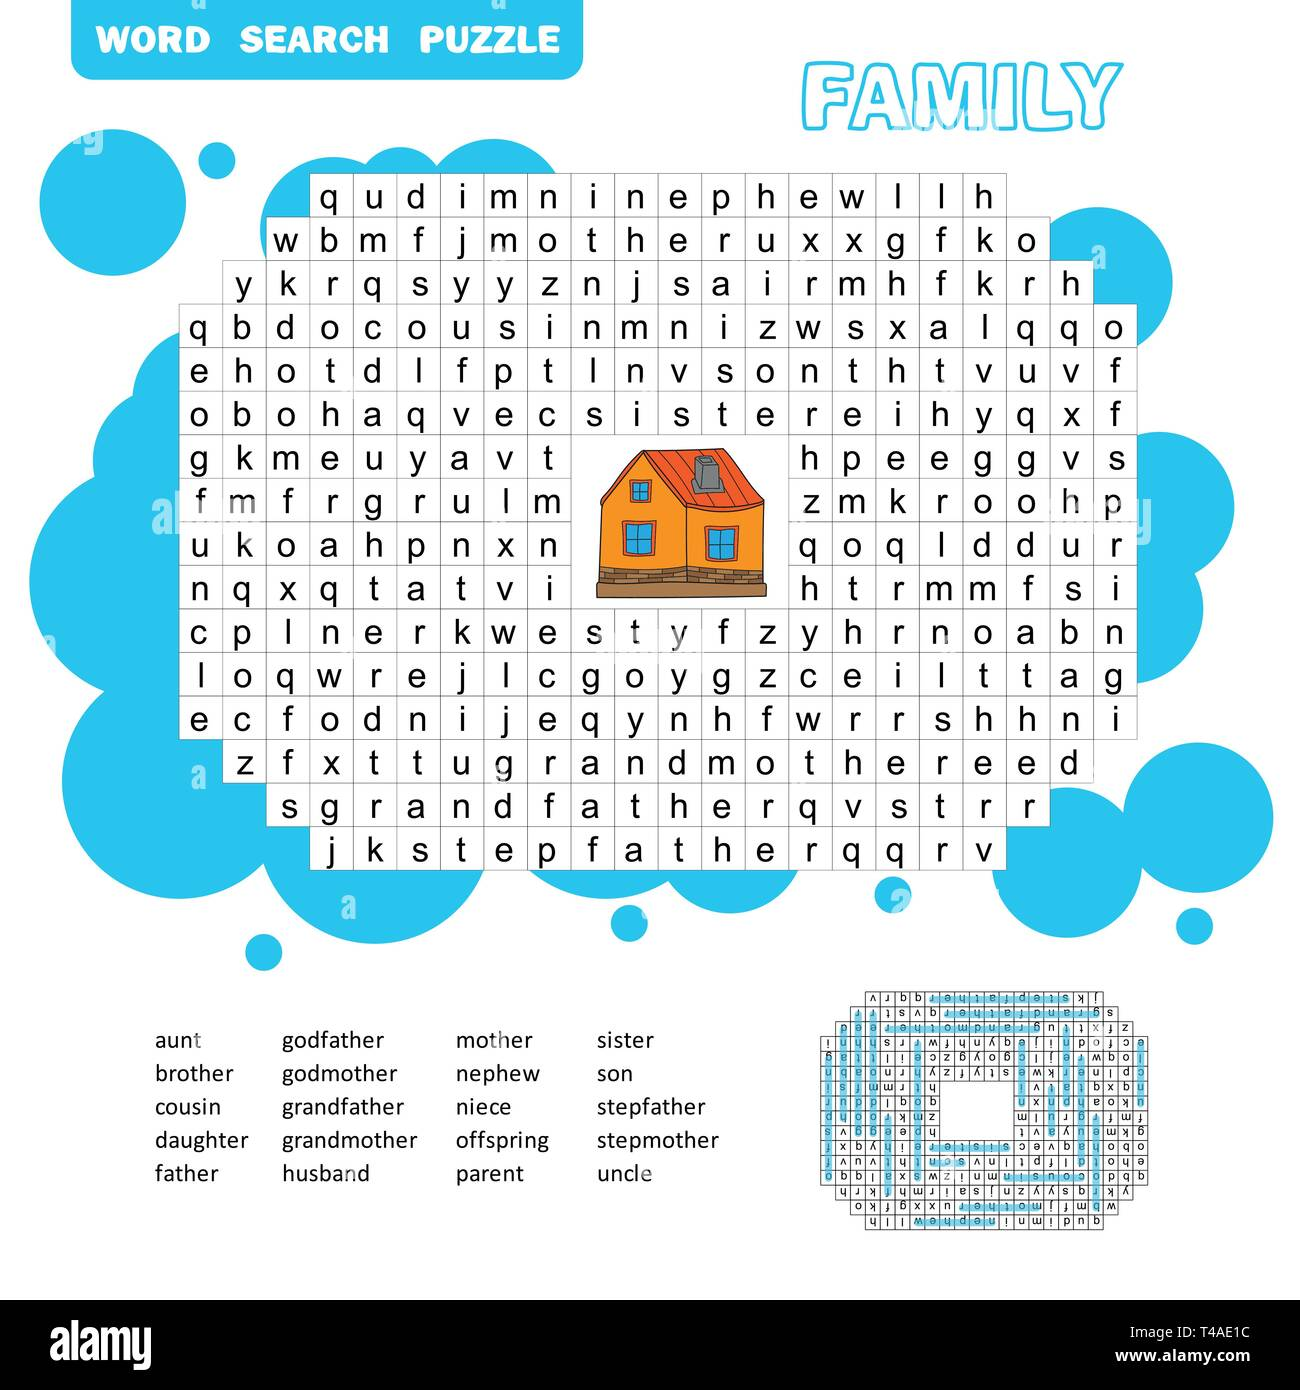 Puzzle and coloring activity page - word search puzzle - English. Family friendly. Answer included - Stock Vector